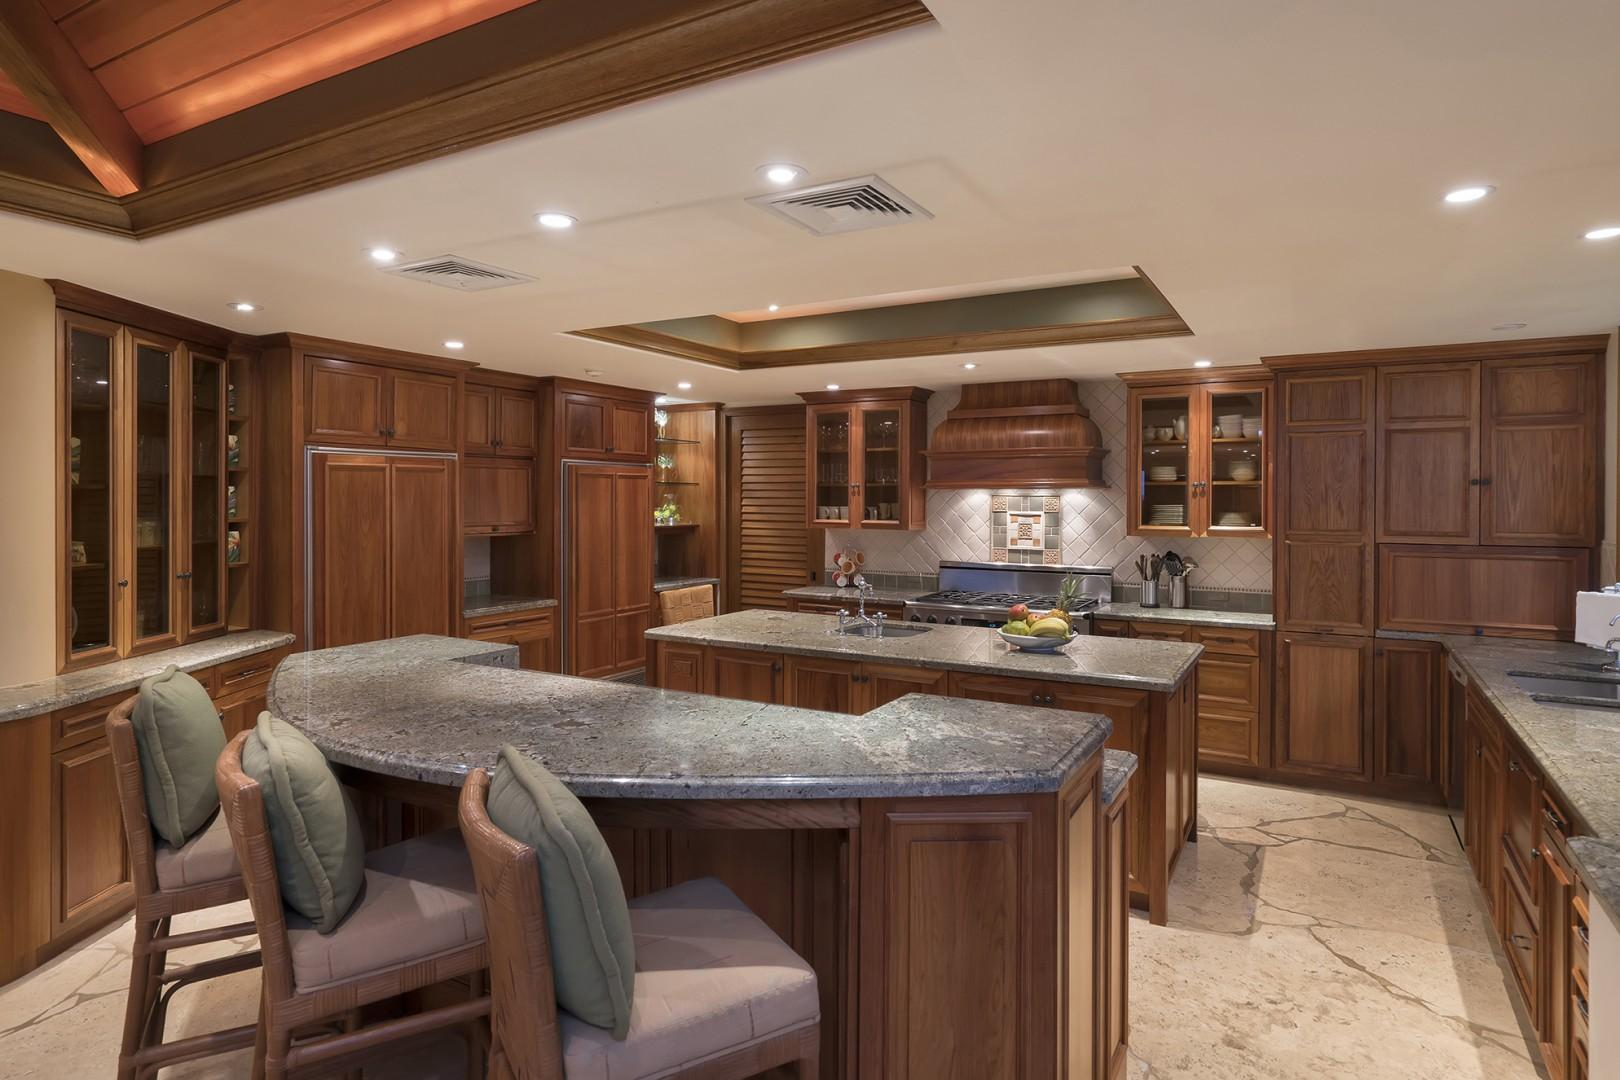 Main house: Fully equipped gourmet kitchen